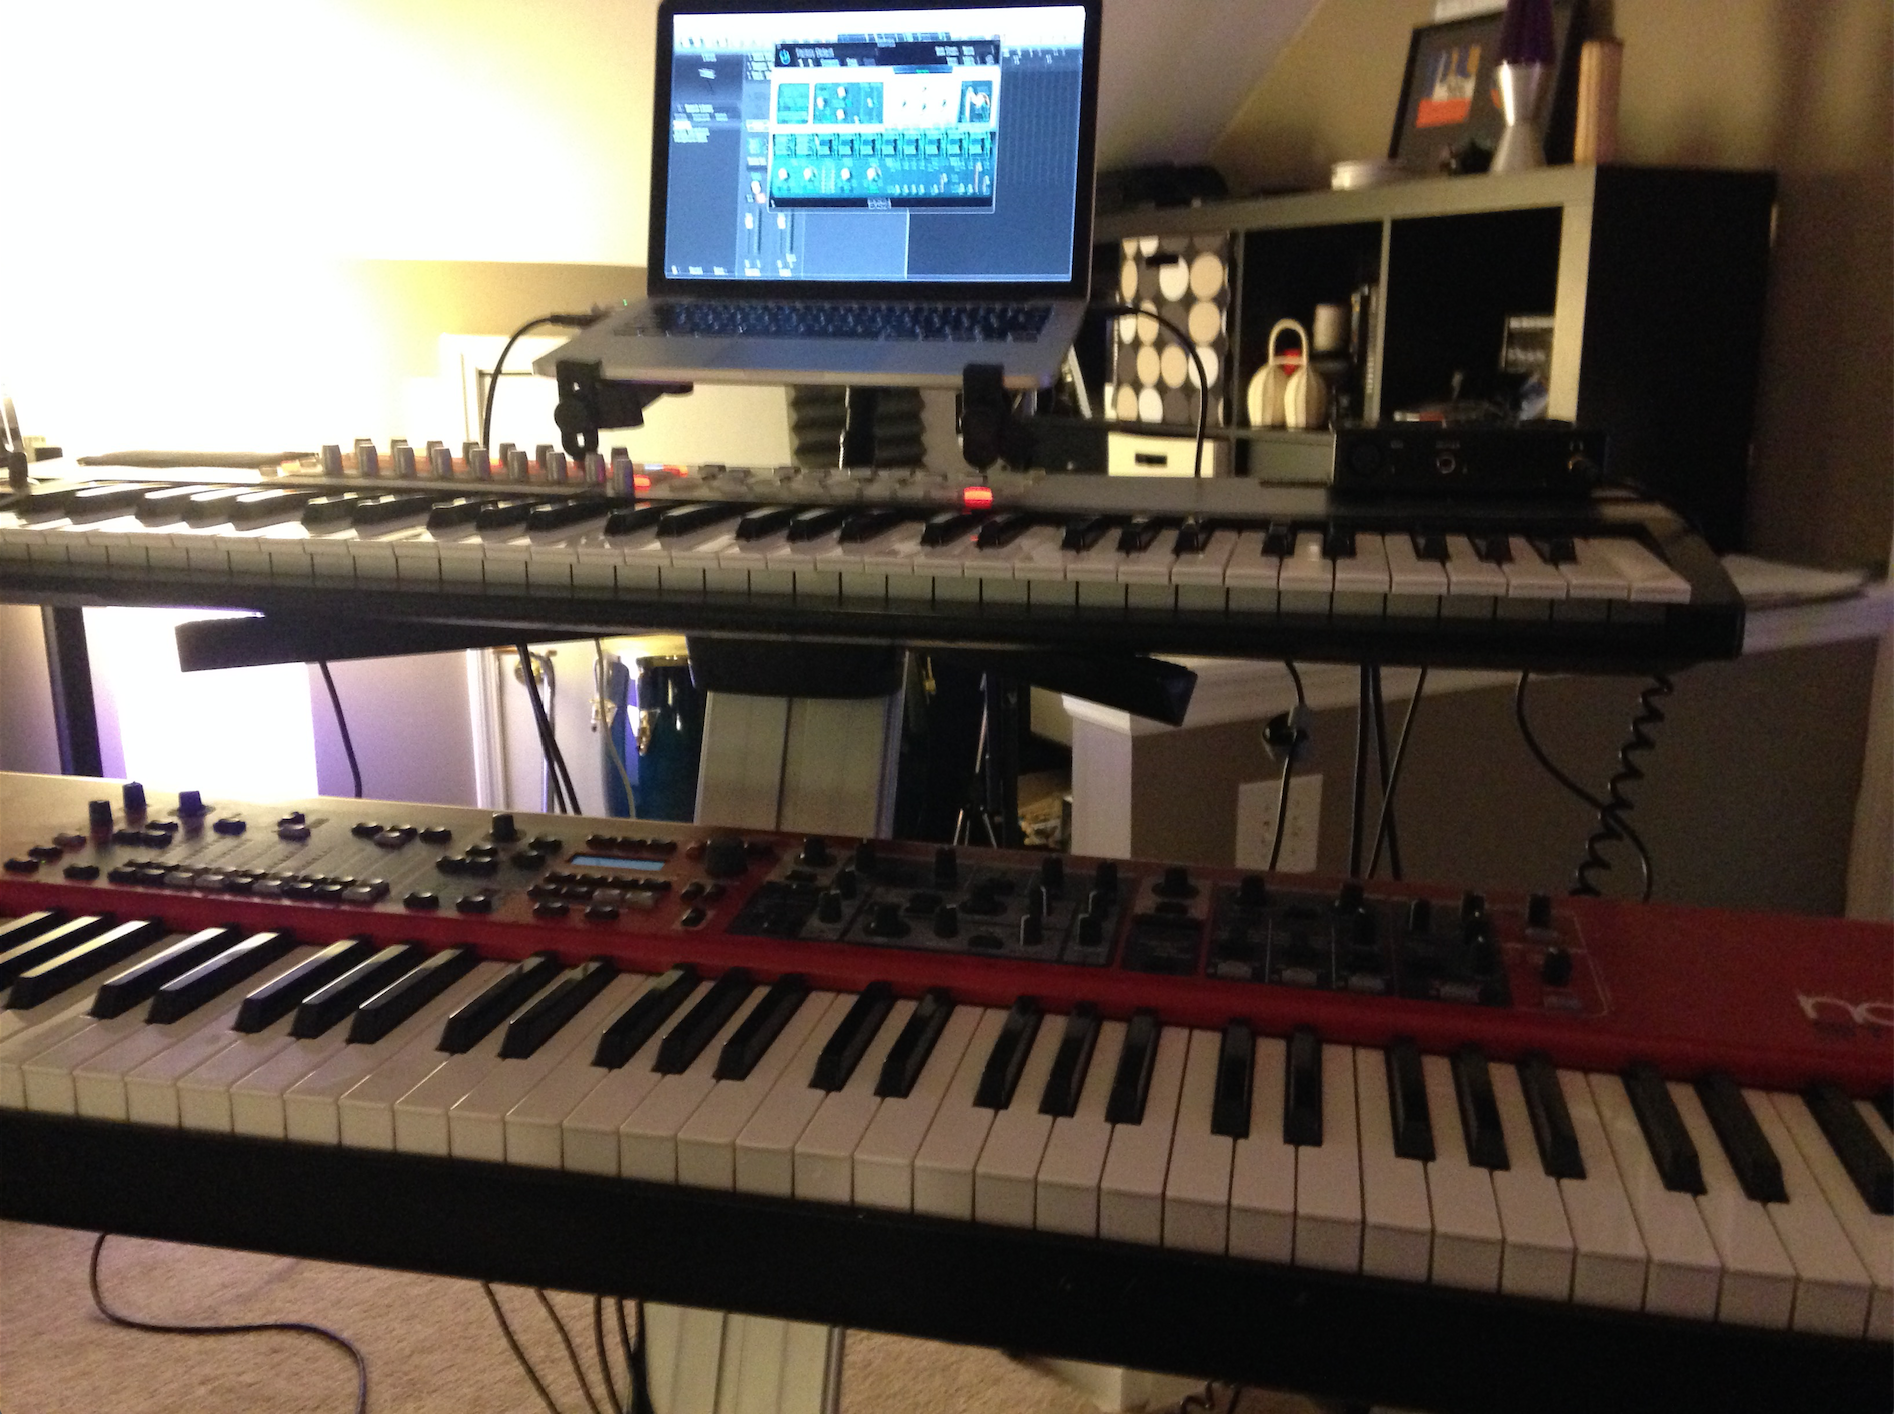 I opted to use my Nord Stage, Novation Remote SL 61, a MOTU MicroBook, and my trusty MacBook Pro running Logic Proon this session. Everything worked well, but I definitely could have simplified to just the Nord and a MacBook. Less is more when you're going for speed.